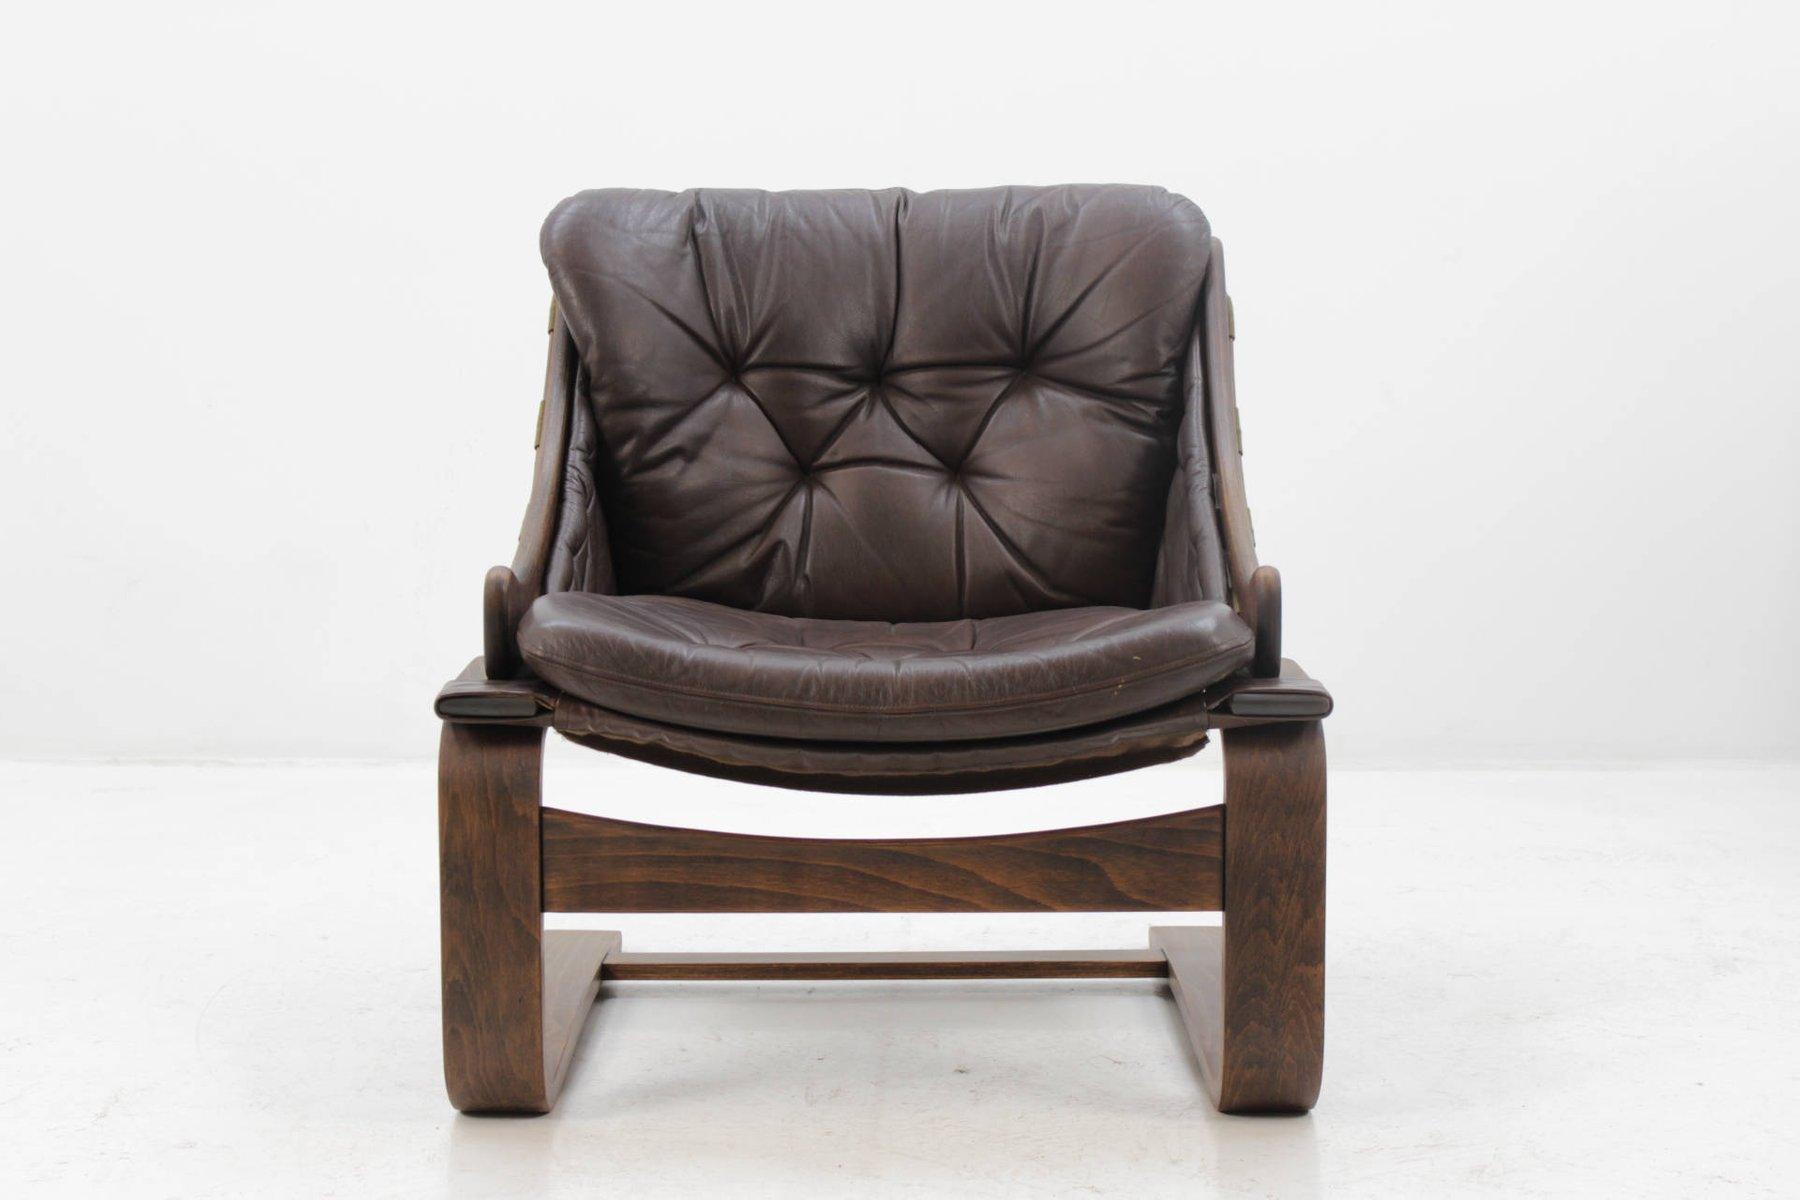 scandinavian bentwood leather lounge chair by ake. Black Bedroom Furniture Sets. Home Design Ideas